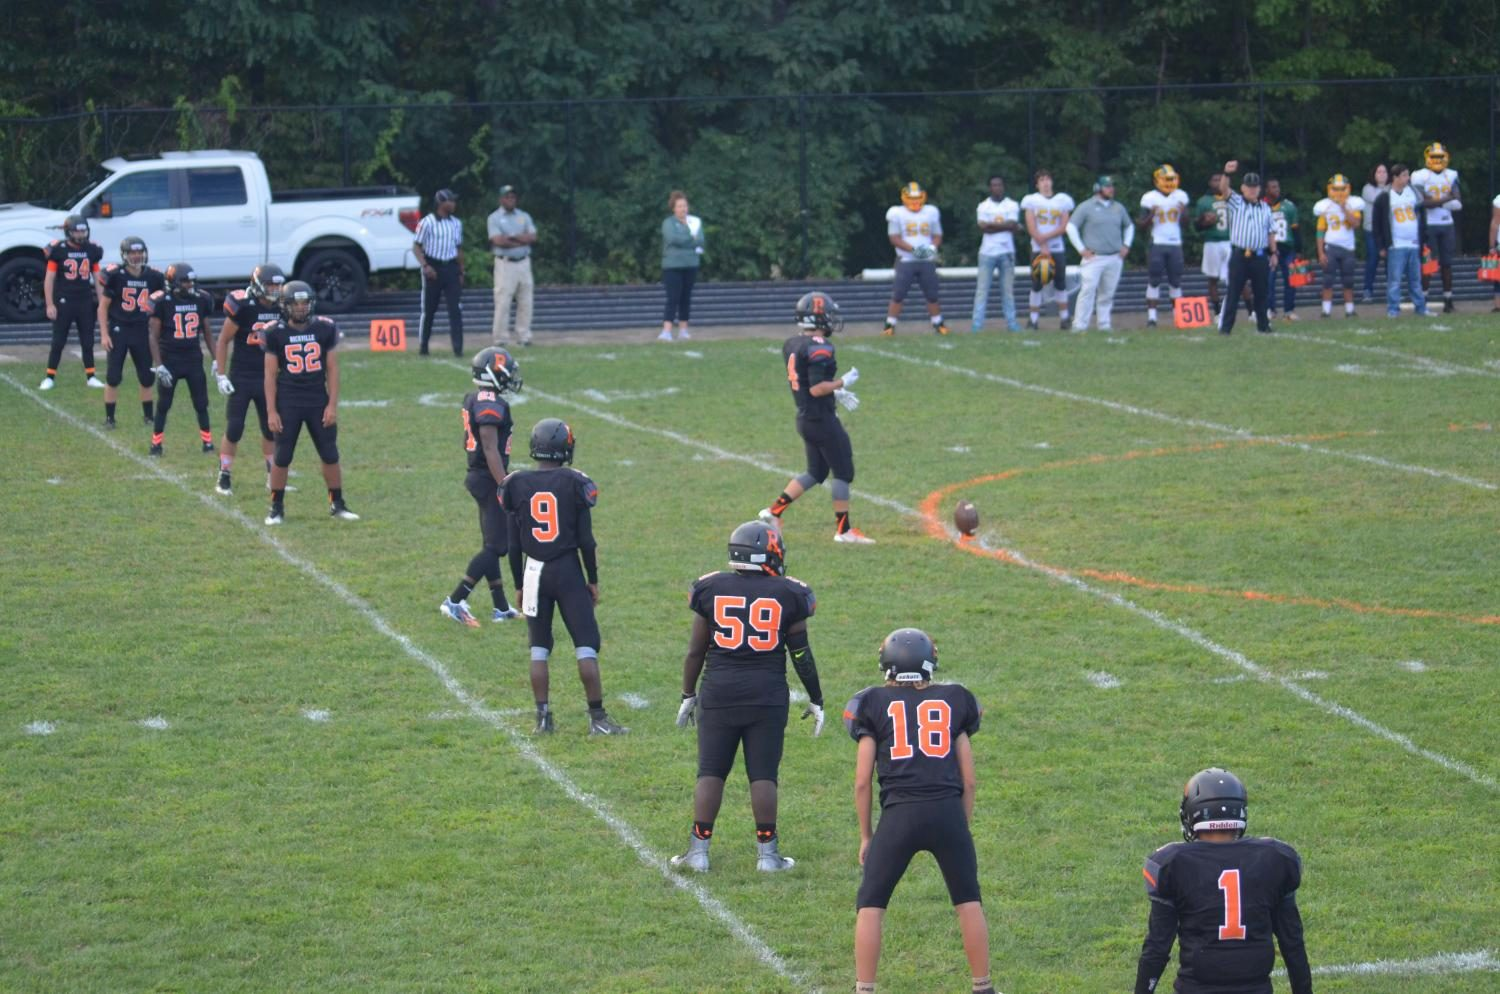 The Rockville Rams opened their season against  the Seneca Valley Screaming Eagles Sept. 1 before school started.